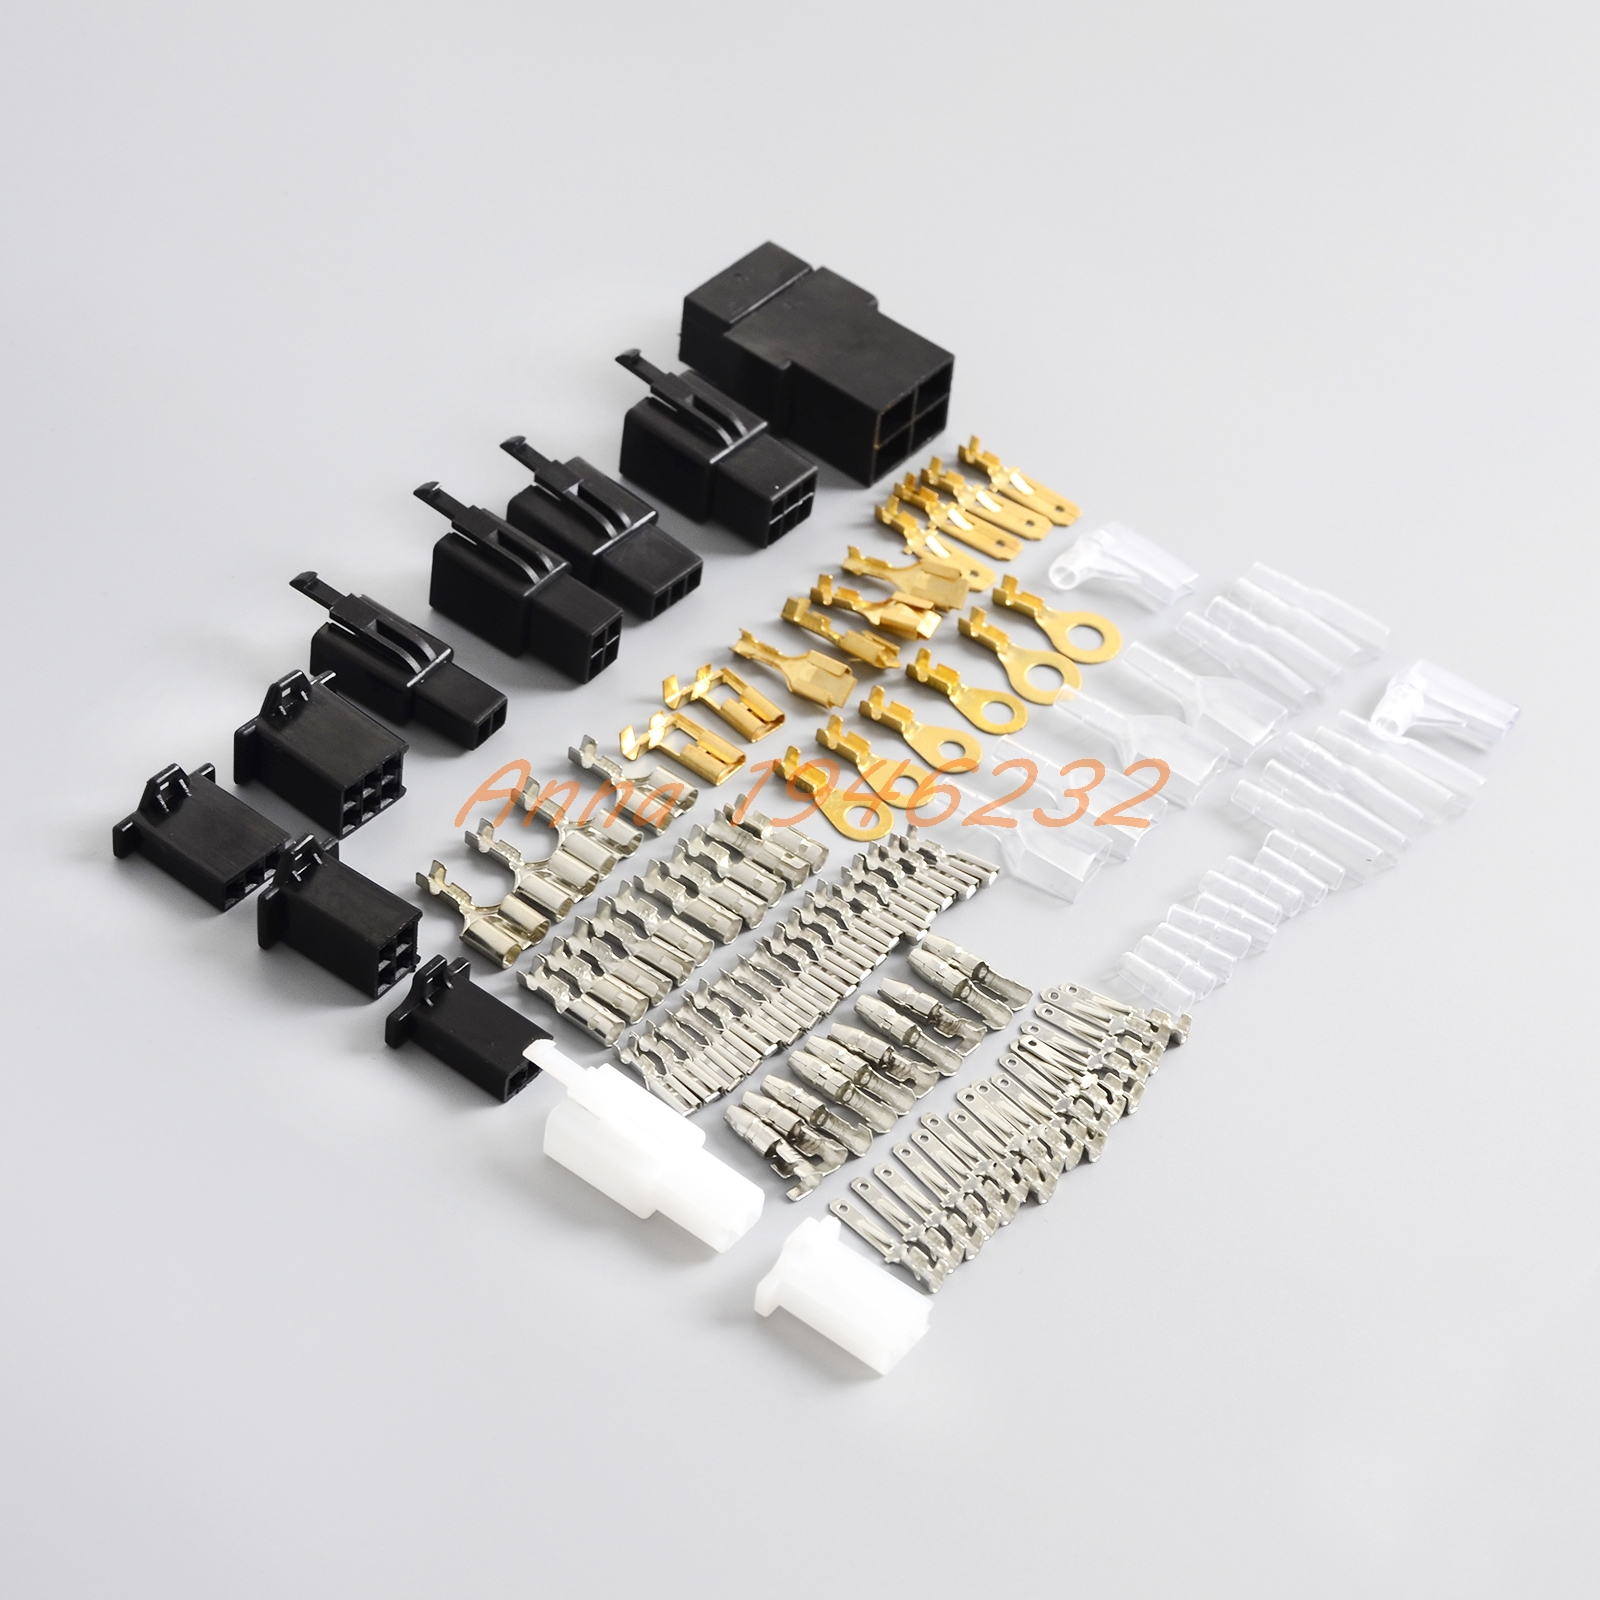 Electrical Wiring Harness Loom Repair Kit Plugs Bullets For Honda Gb500 Nc50 Cb500 Cbr250 Vf750 Cb125 Cb250 Cb400 Cb750 Cbr1000 Cbf600 In Covers Ornamental